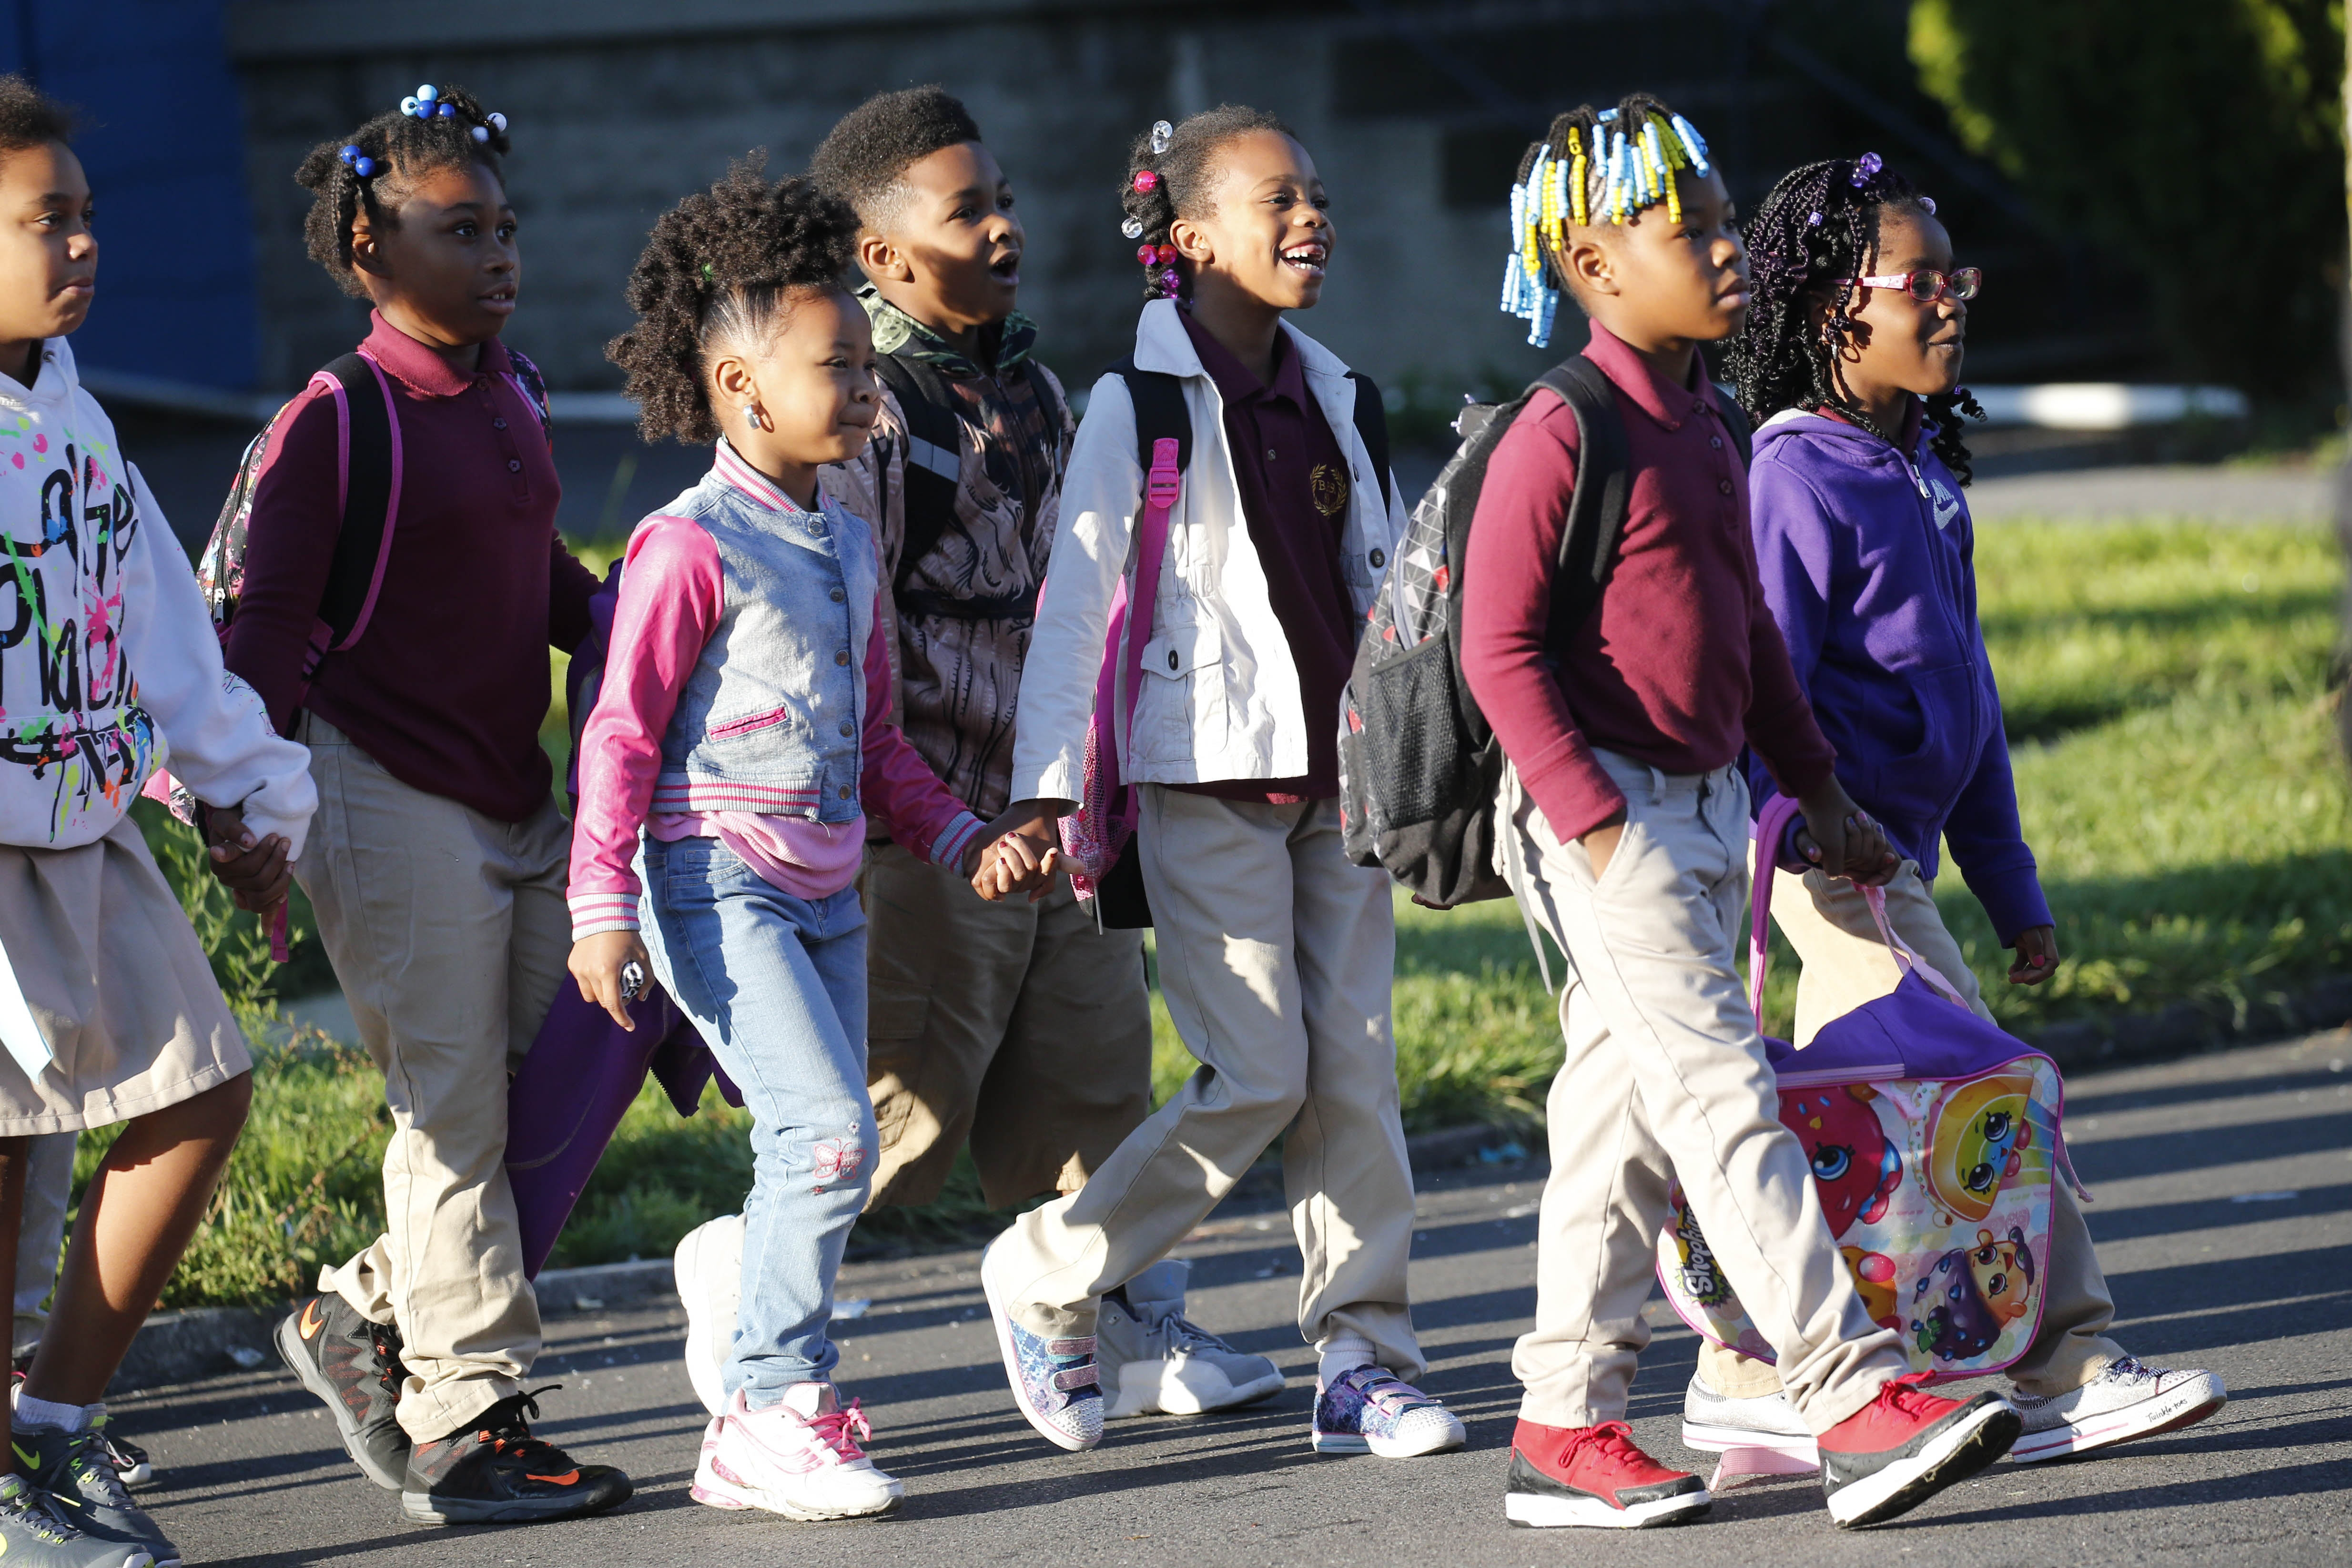 A group of students and faculty from Highgate Heights Elementary School walks down Orleans Street on their way to school as part of National Walk to School day, Wednesday, Oct. 5, 2016.  (Derek Gee/Buffalo News)